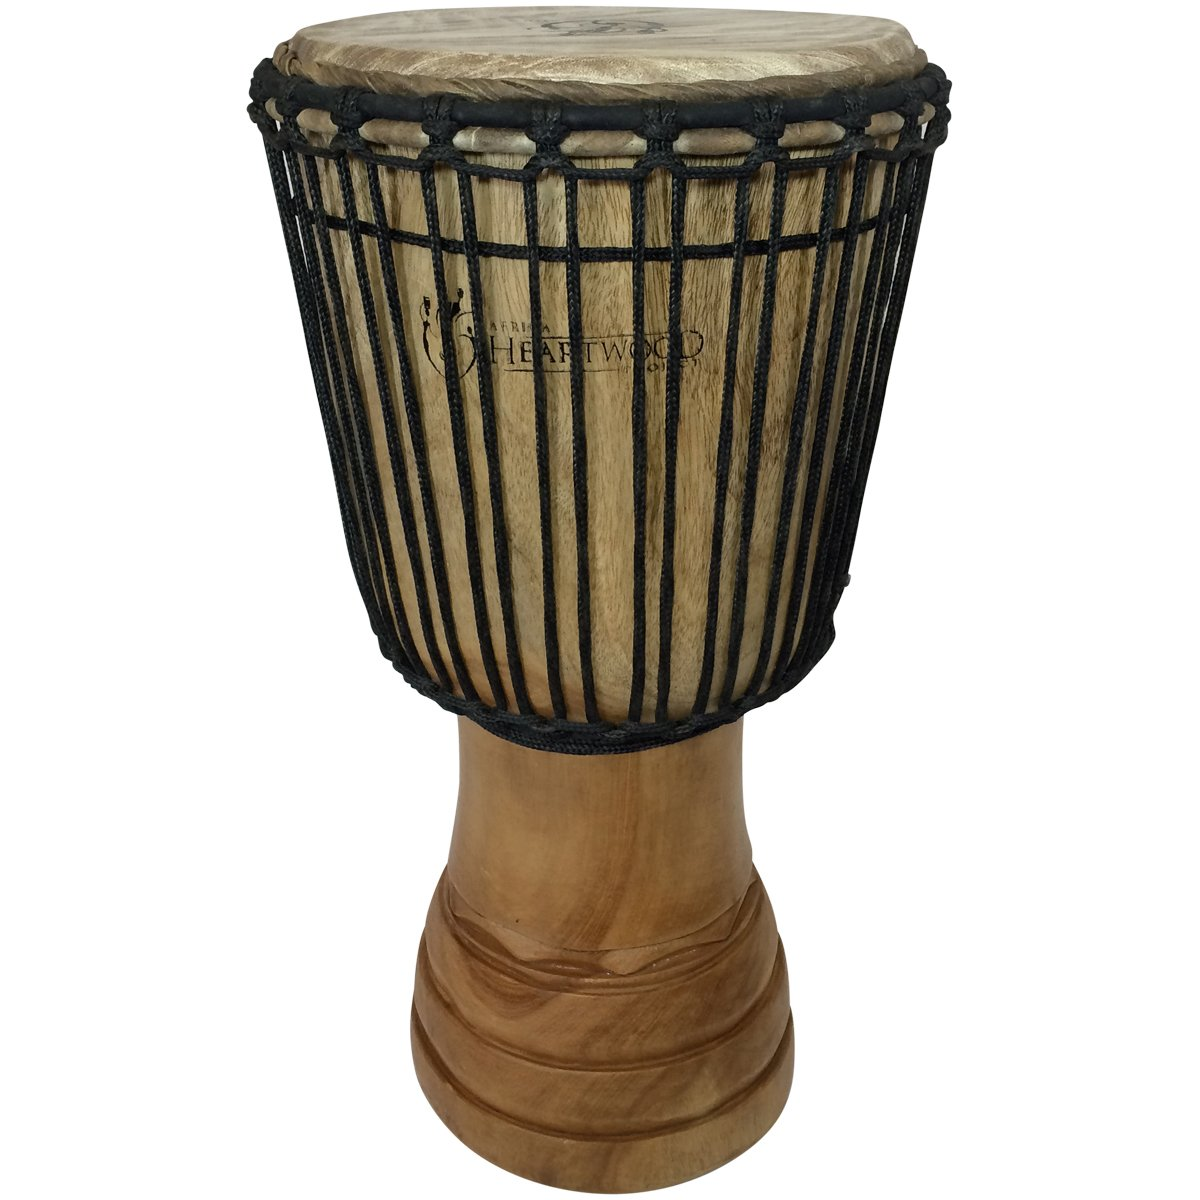 Hand-carved Djembe Drum From Africa - 11''x22'' Classical Heartwood Djembe